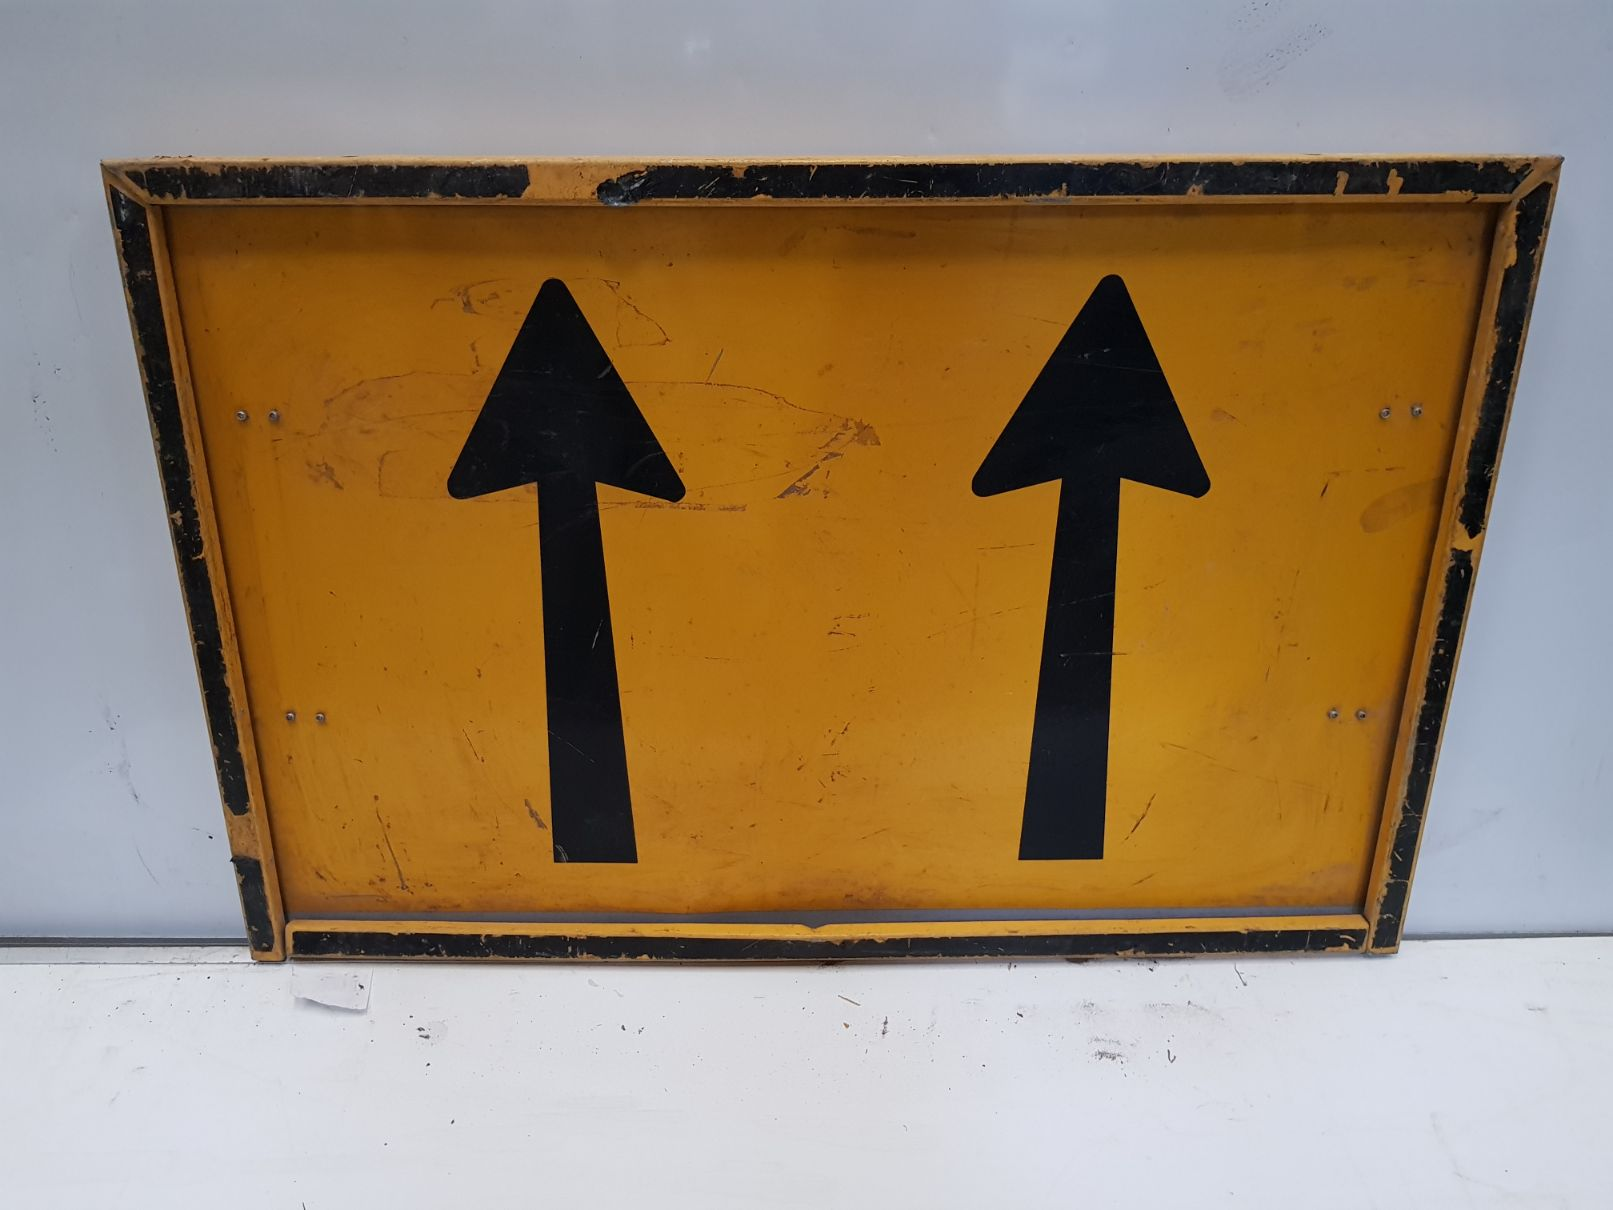 2 Lane Status Boxed Edge Sign.jpg